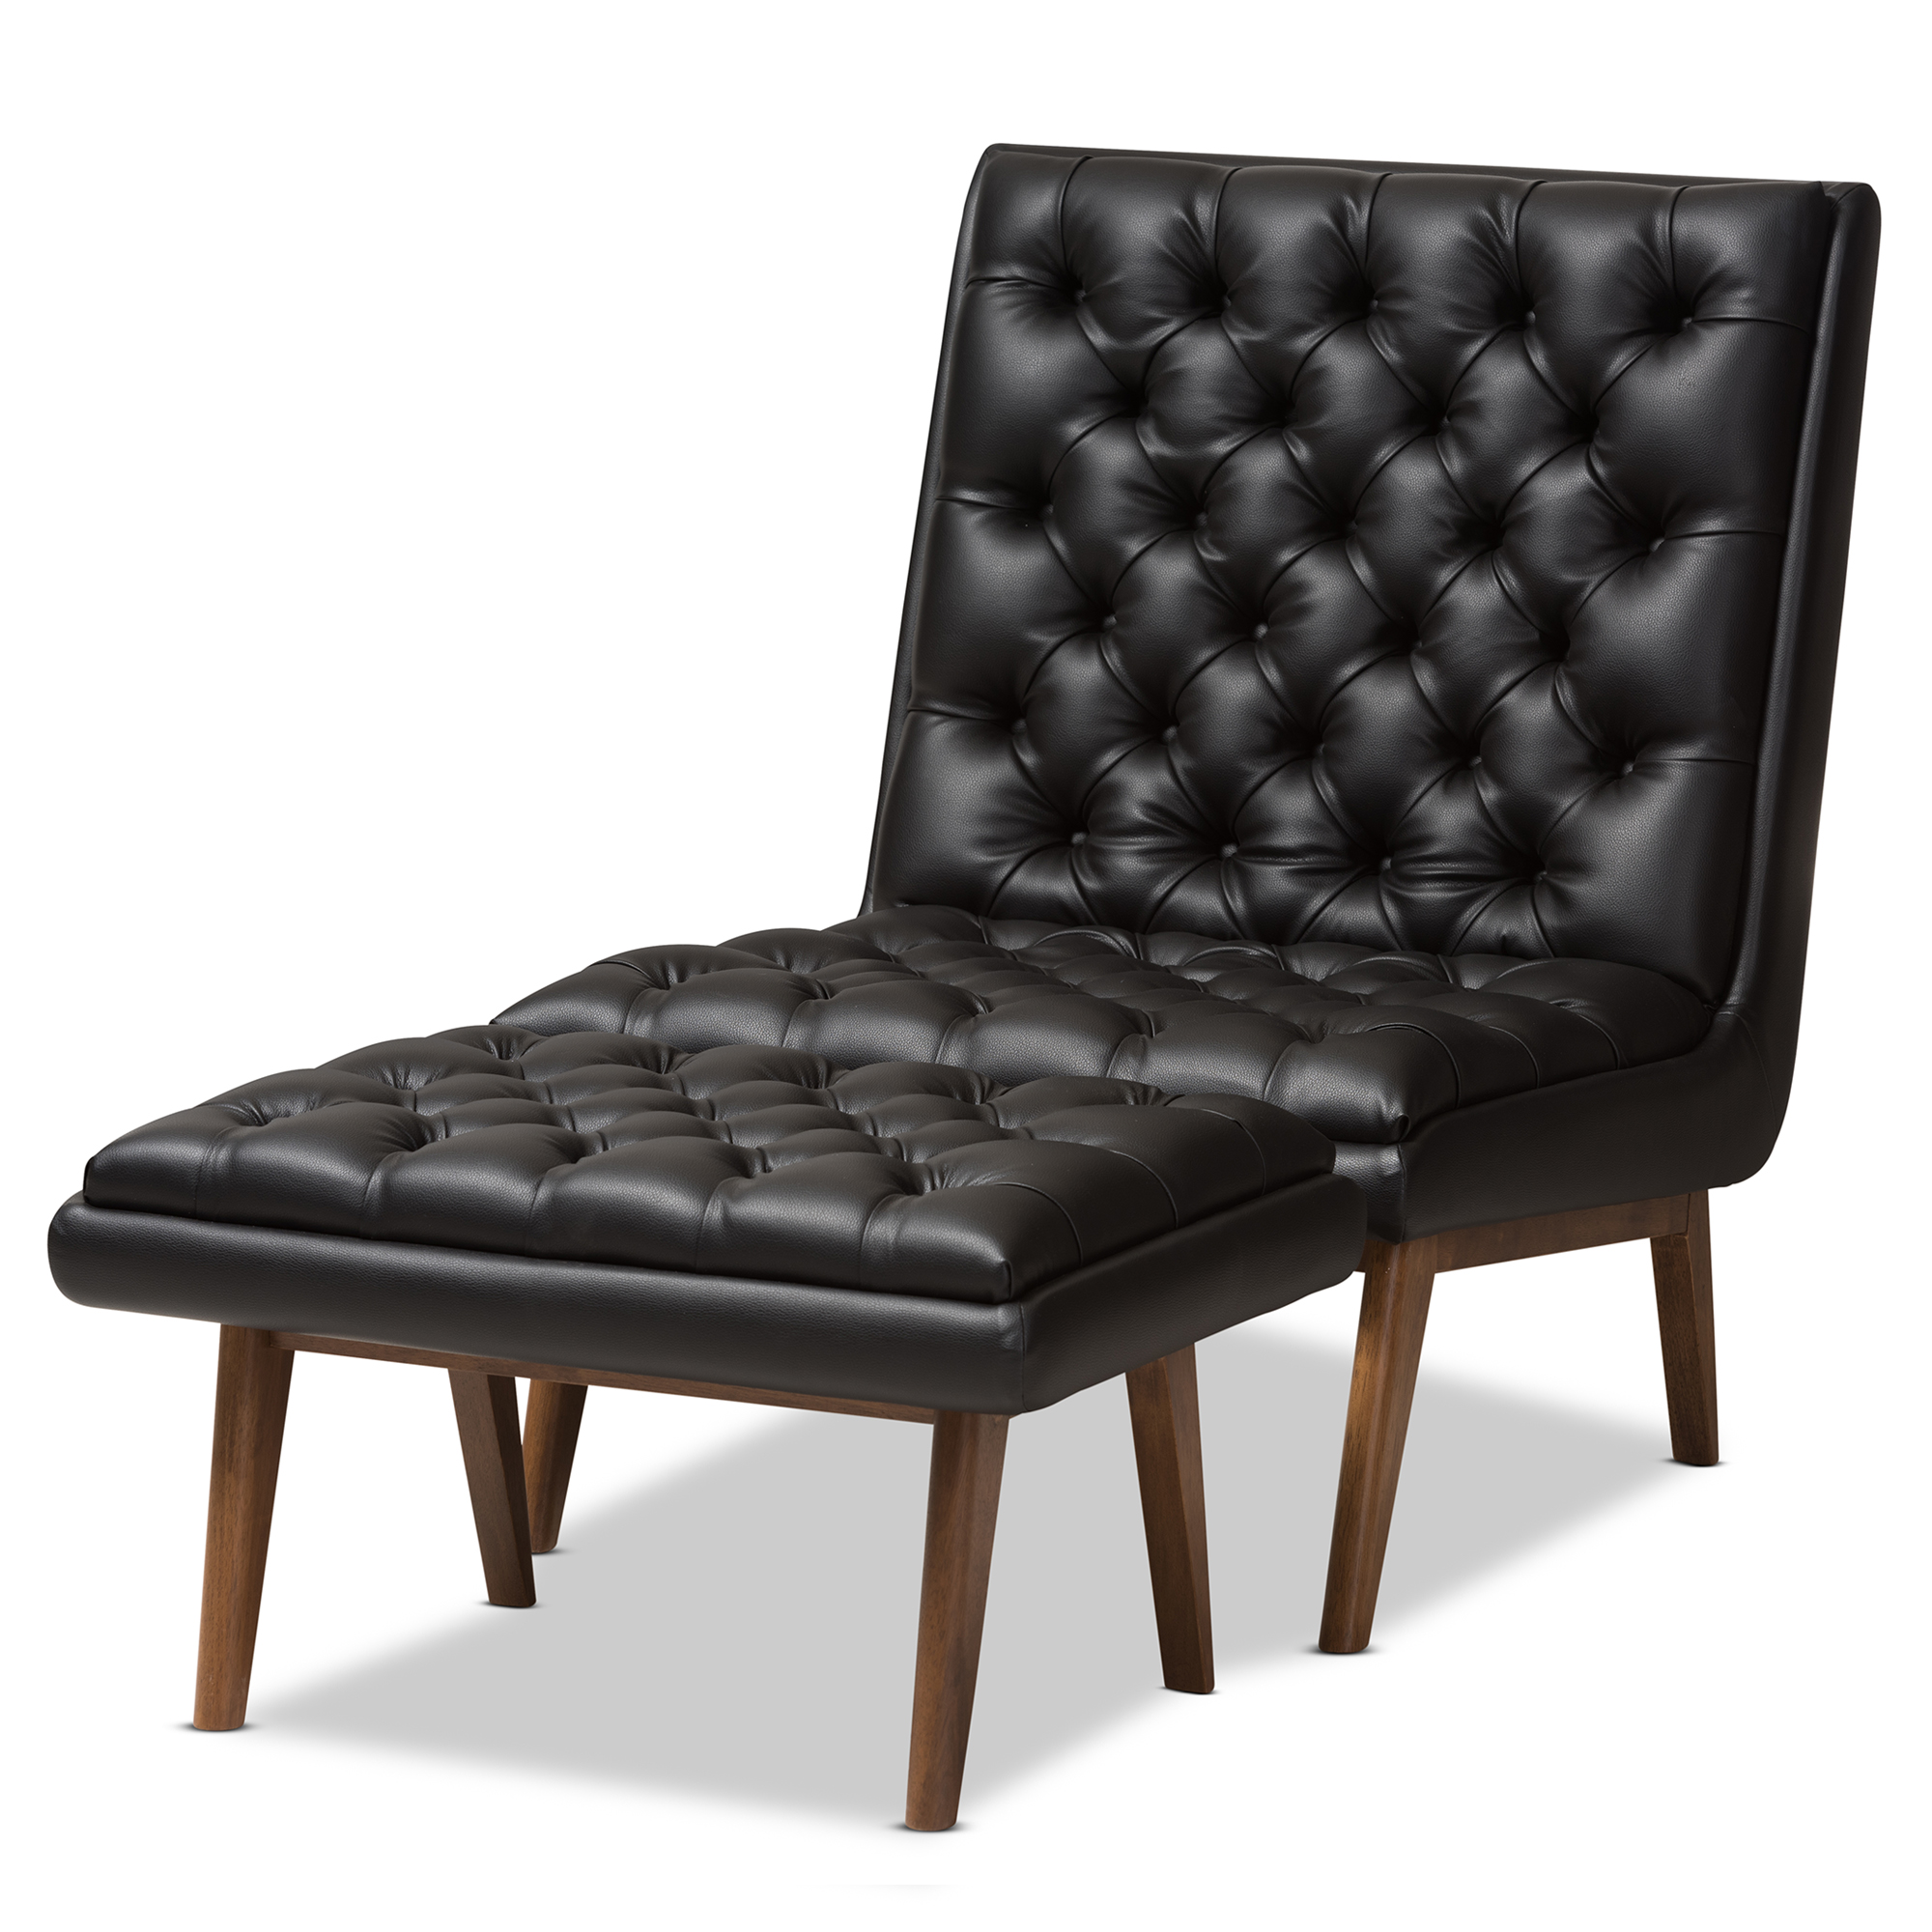 Picture of: Baxton Studio Annetha Mid Century Modern Black Faux Leather Upholstered Walnut Finished Wood Chair And Ottoman